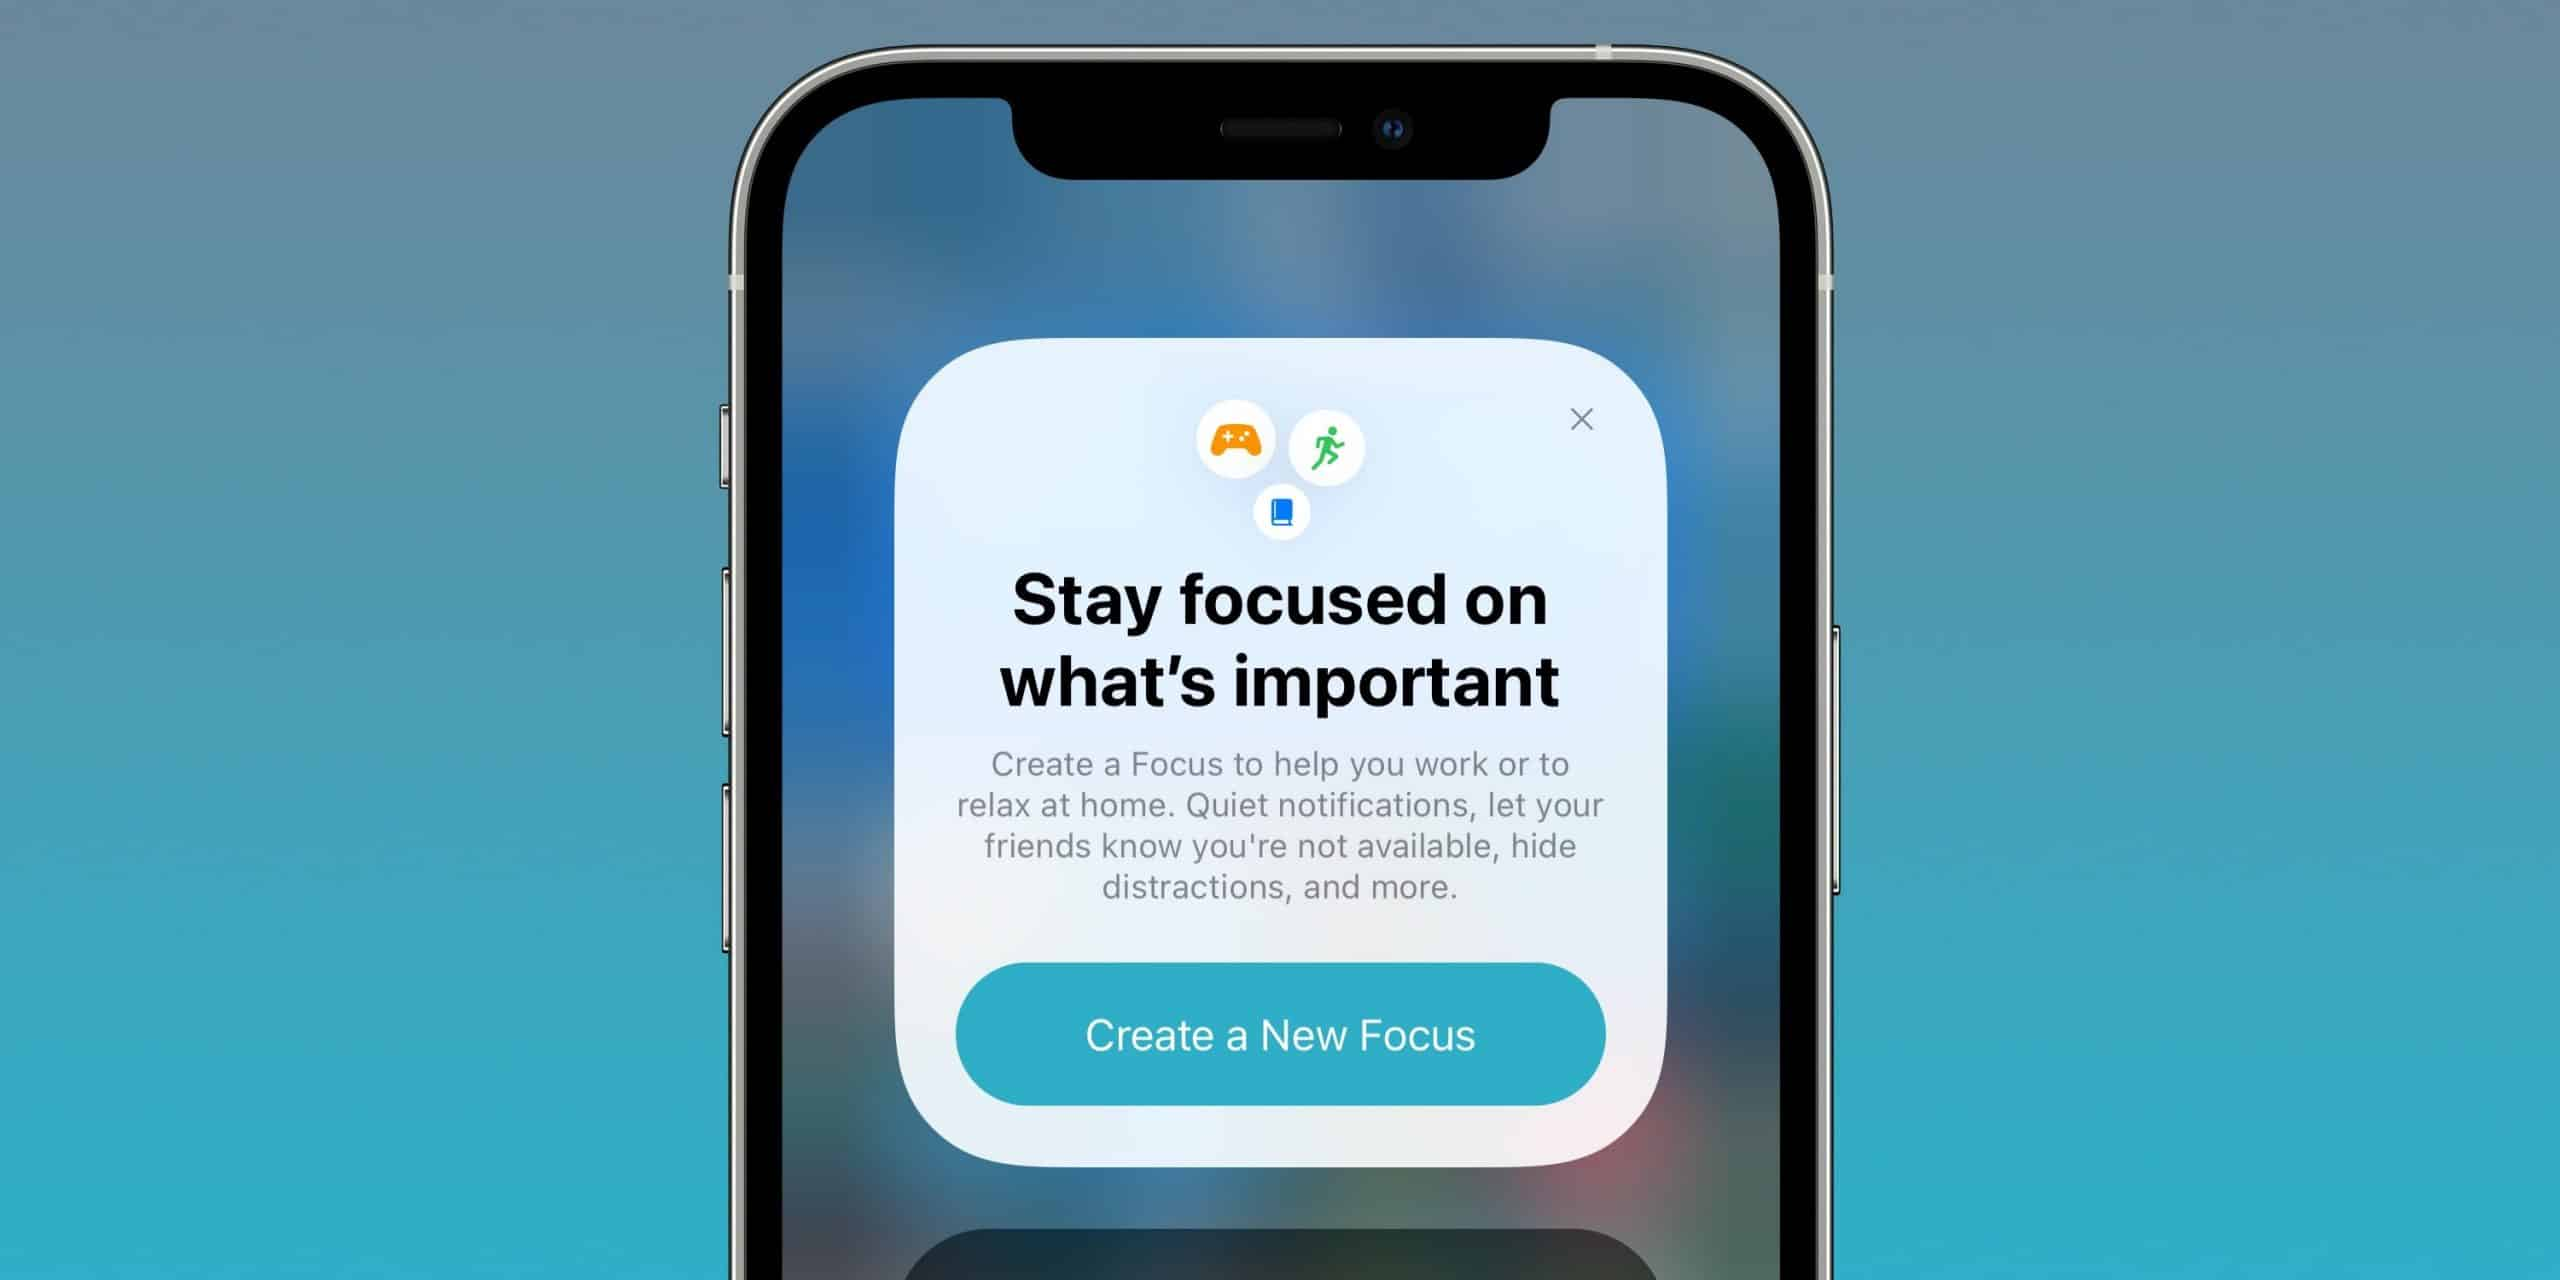 iOS 15 brings new focus features to manage notifications